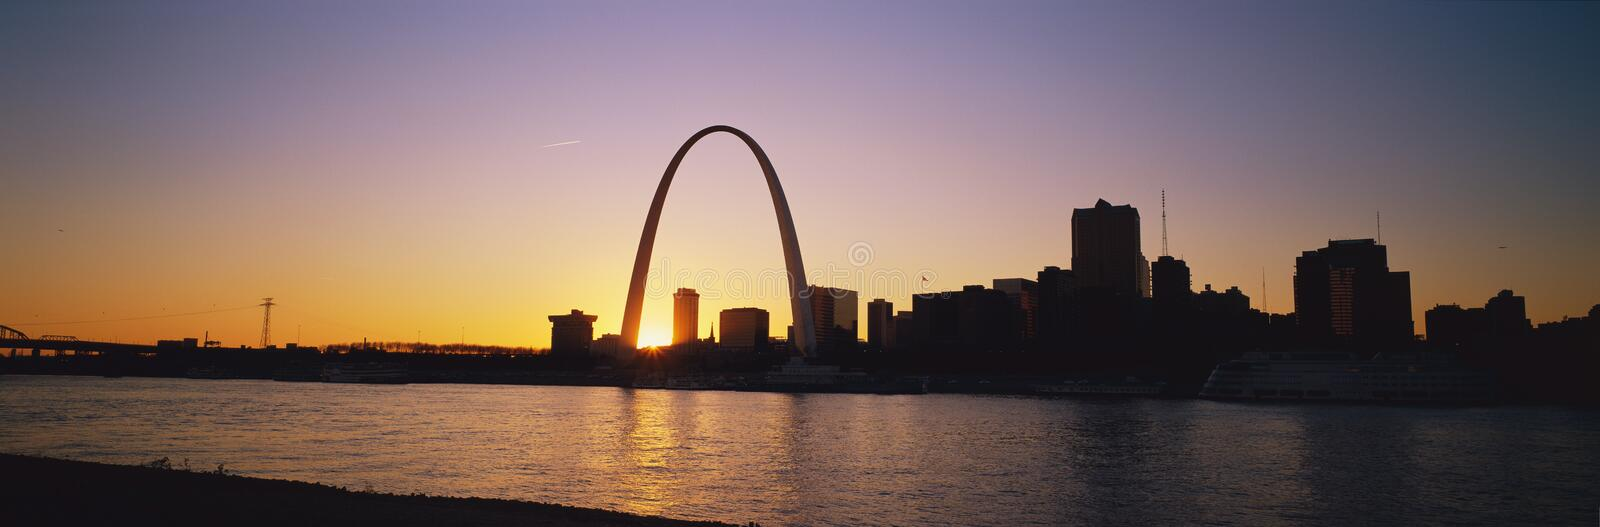 Arco e St Louis do Gateway foto de stock